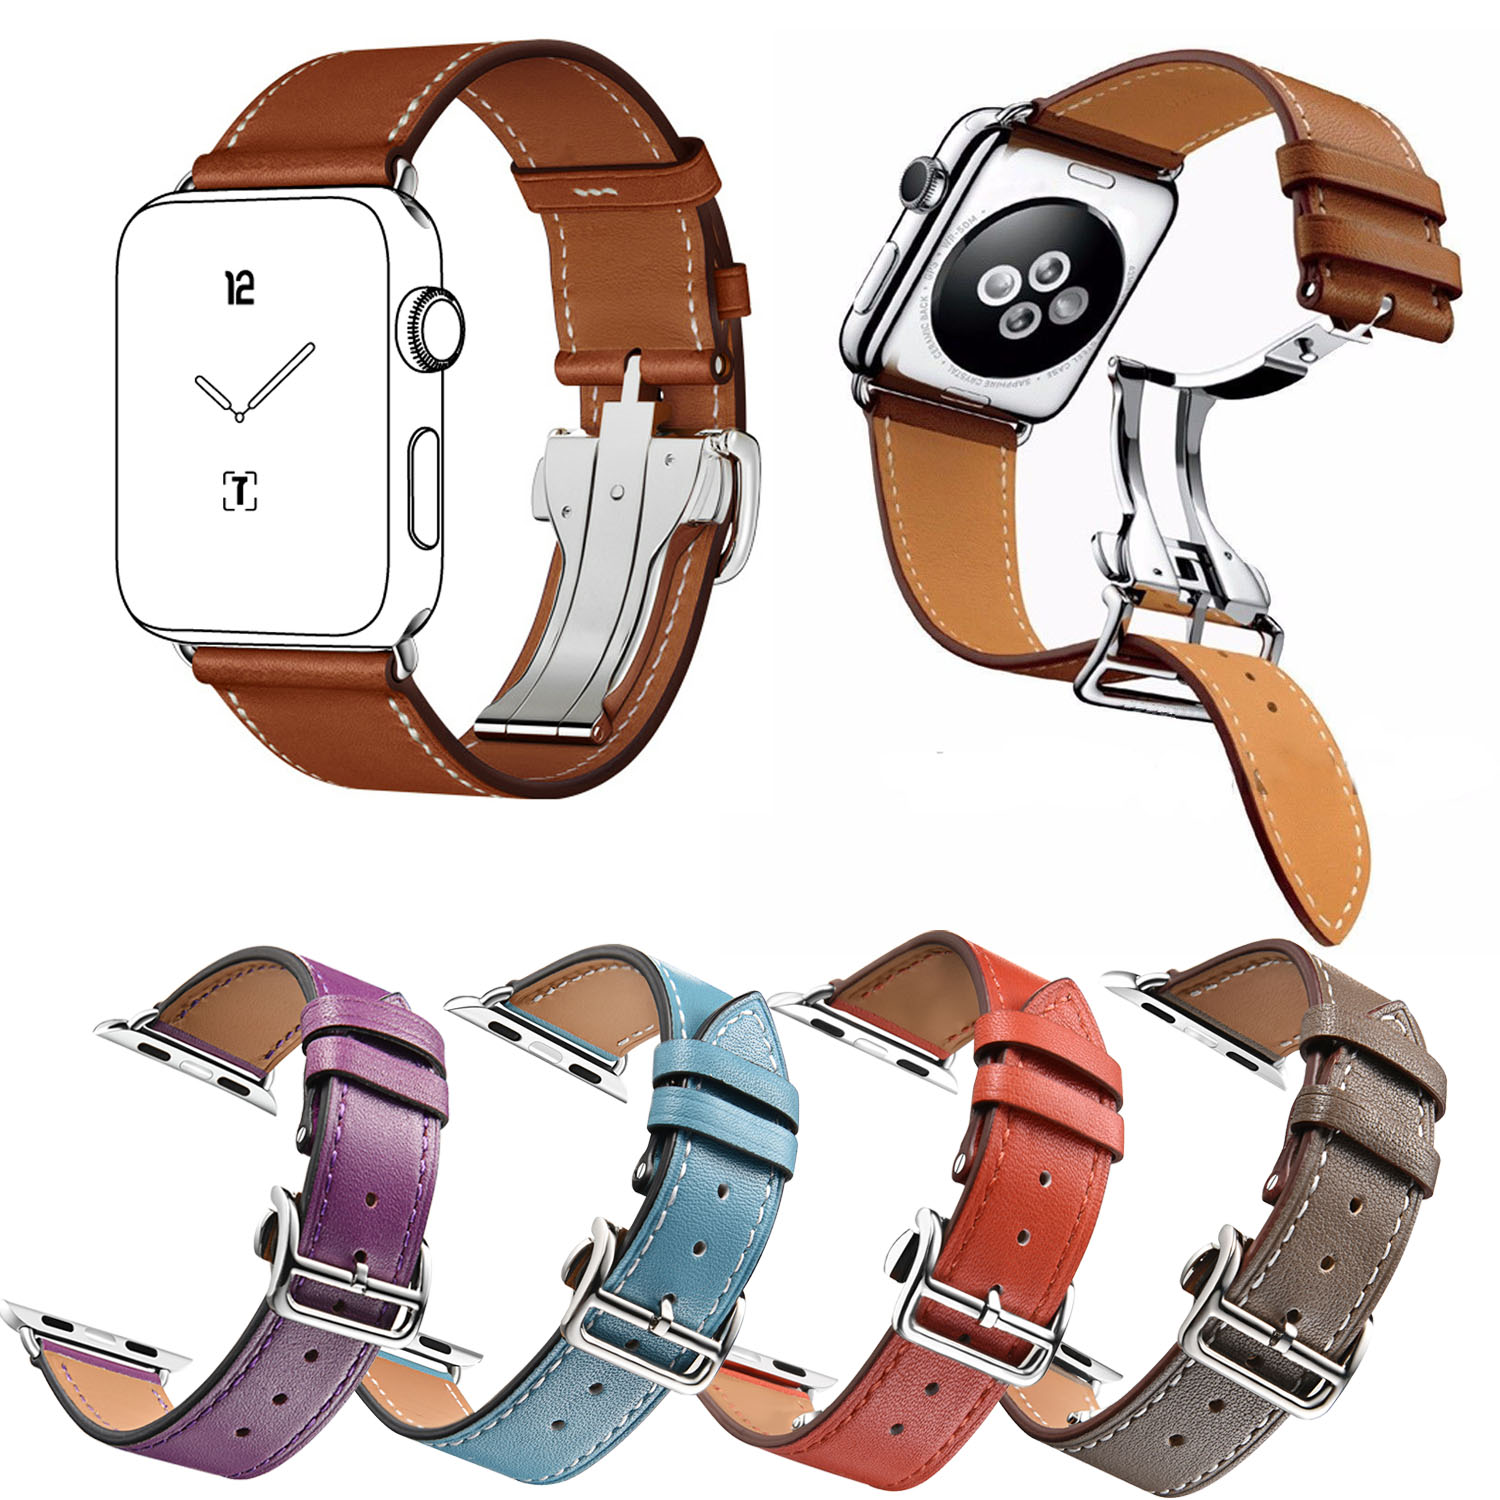 Single Tour Genuine Leather Strap for Apple Watch Band Series 3 2 1 Bracelet for iWatch Belt w Folding Deployment Clasp Buckle купить недорого в Москве